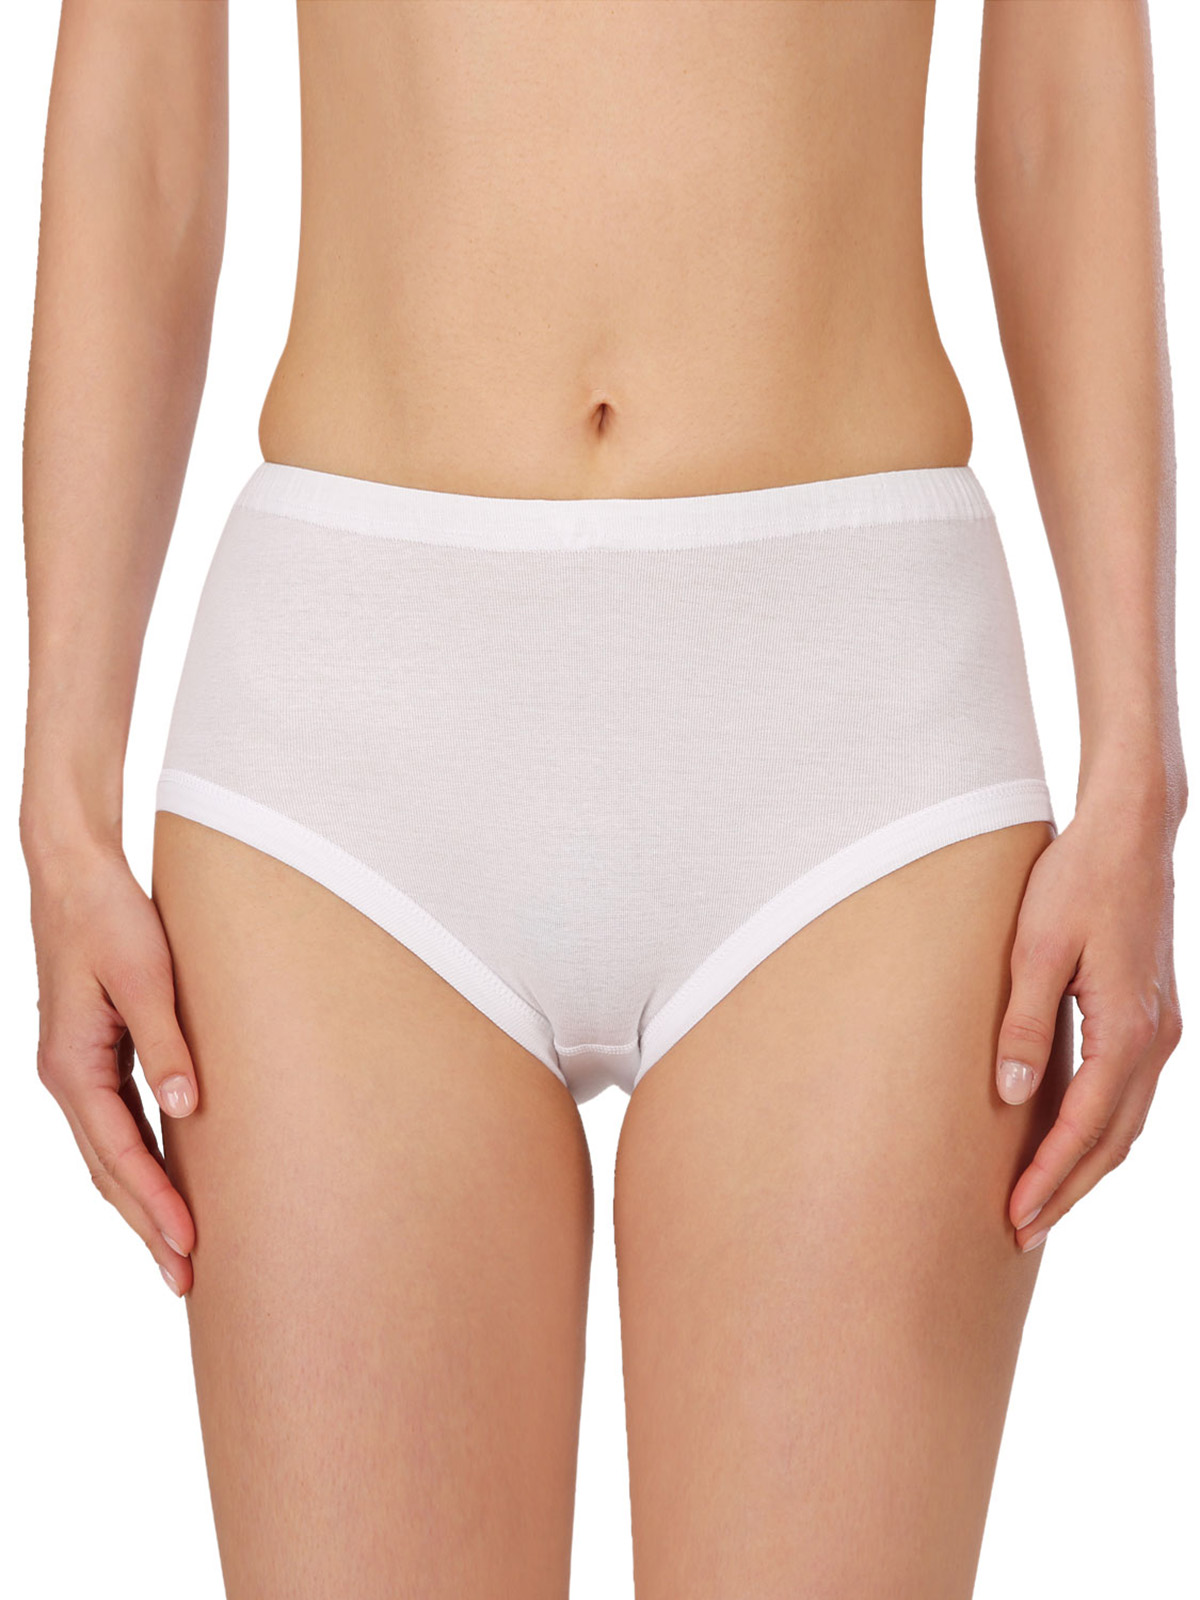 Naturana Women's Maxi Briefs 2202